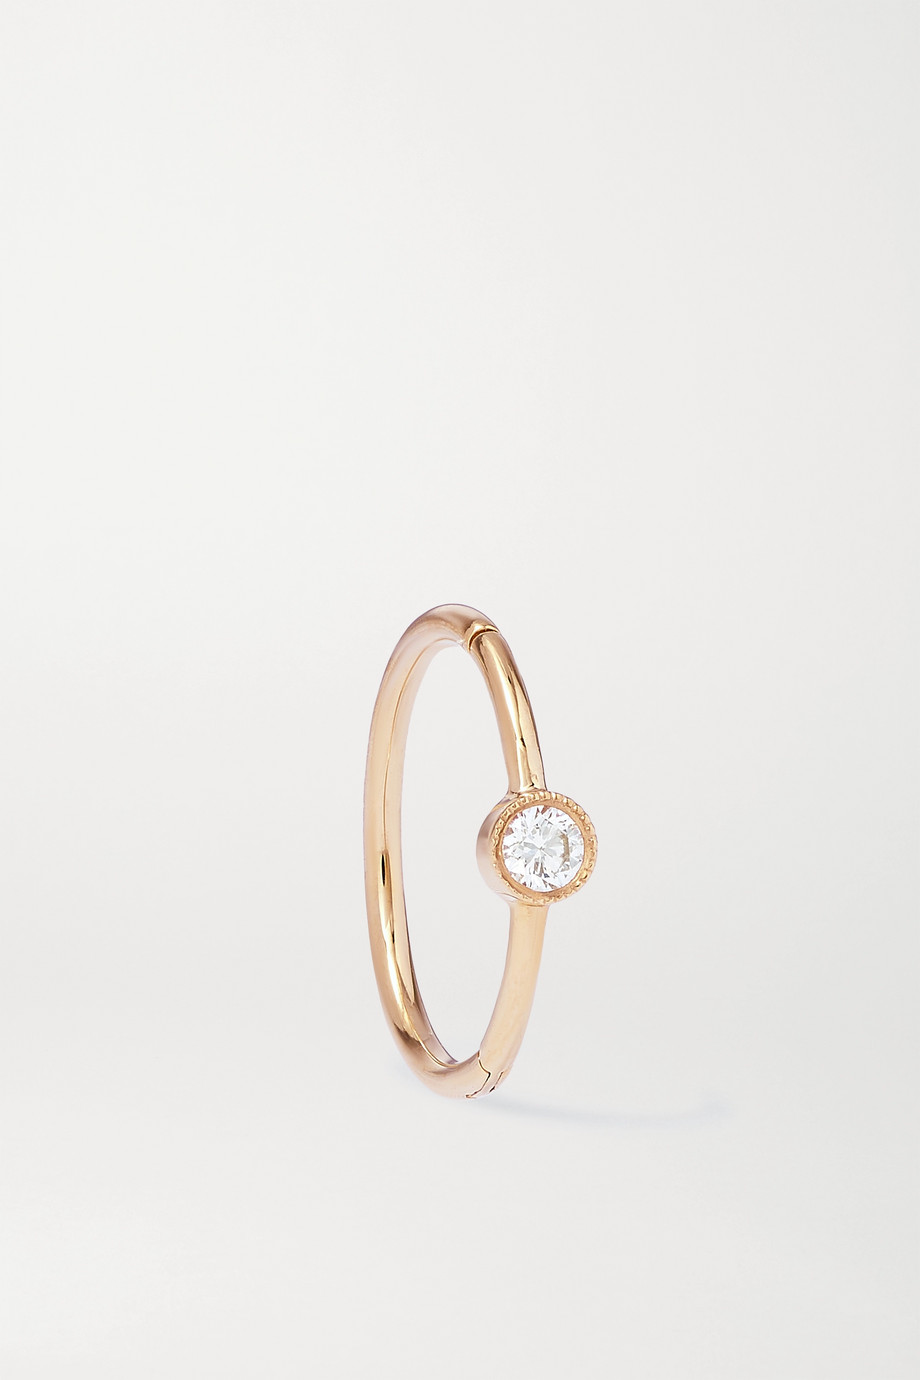 MARIA TASH 9.5mm 18-karat rose gold diamond hoop earring